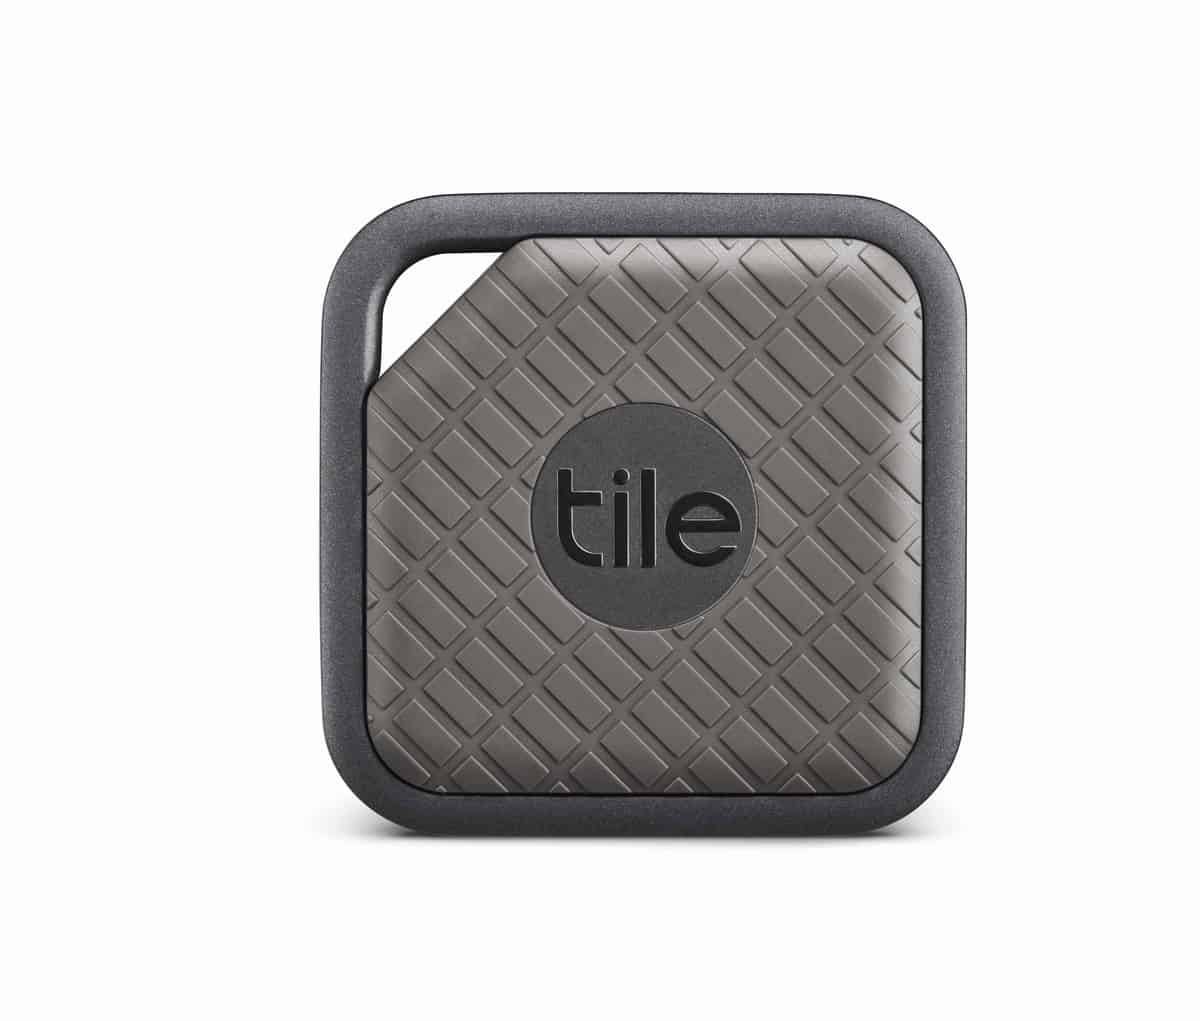 Great Gift for teens - the Tile, don't let them lose their things anymore!